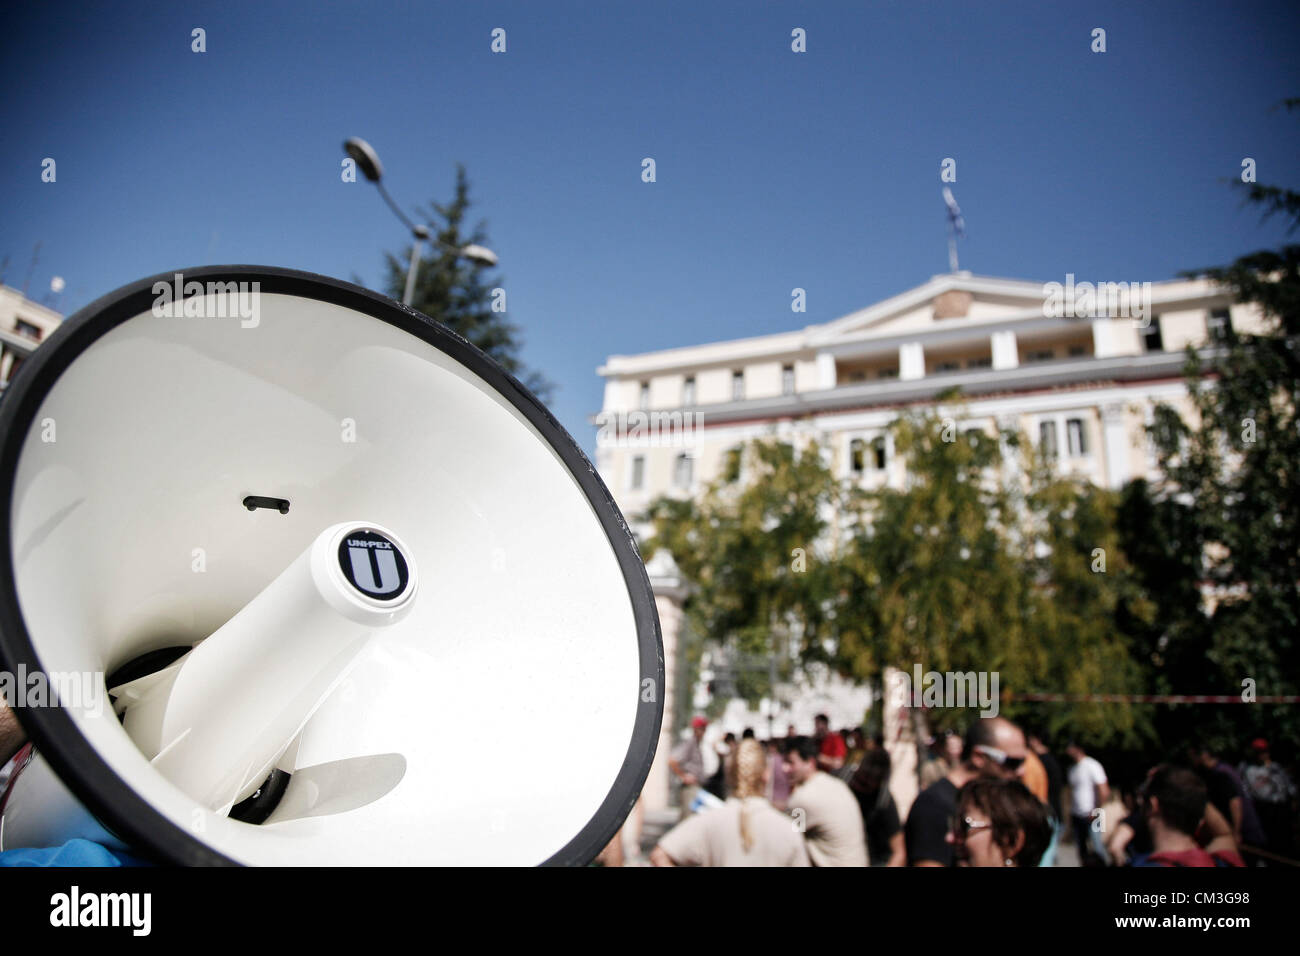 Thessaloniki, Greece. 26th September 2012. Greek workers have started a Nationwide 24-hour general strike in protest - Stock Image